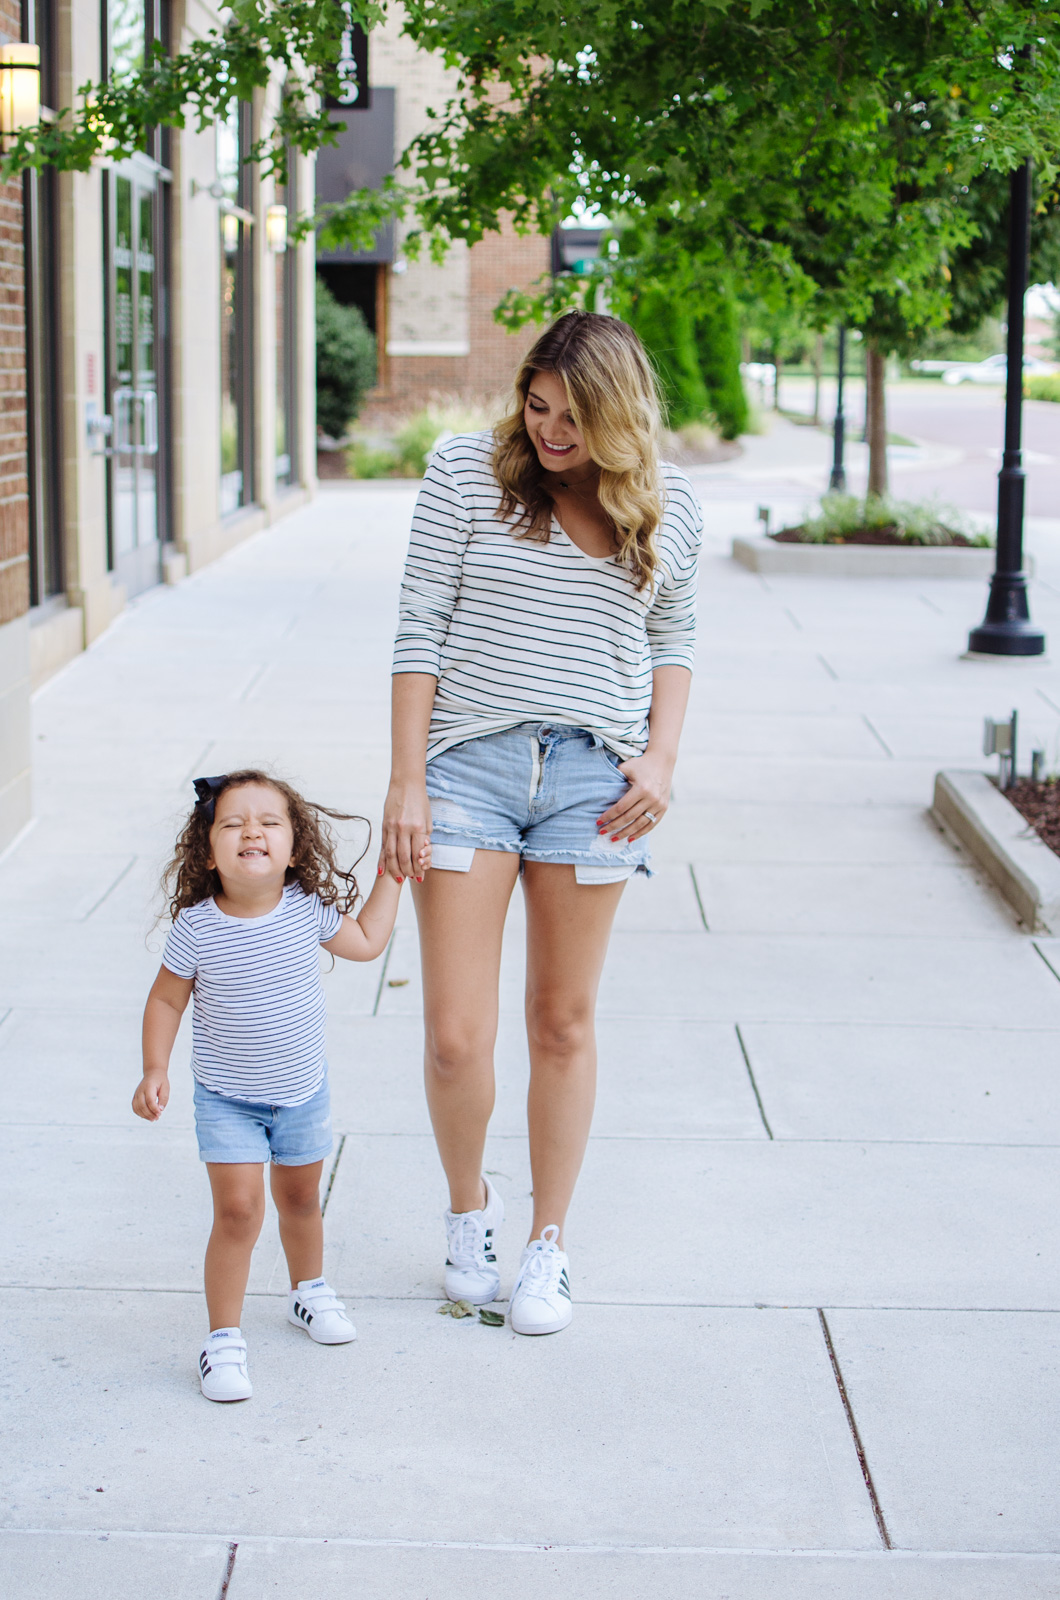 mama daughter outfits - stripes and sneakers | For more mother daughter outfits, head to bylaurenm.com!